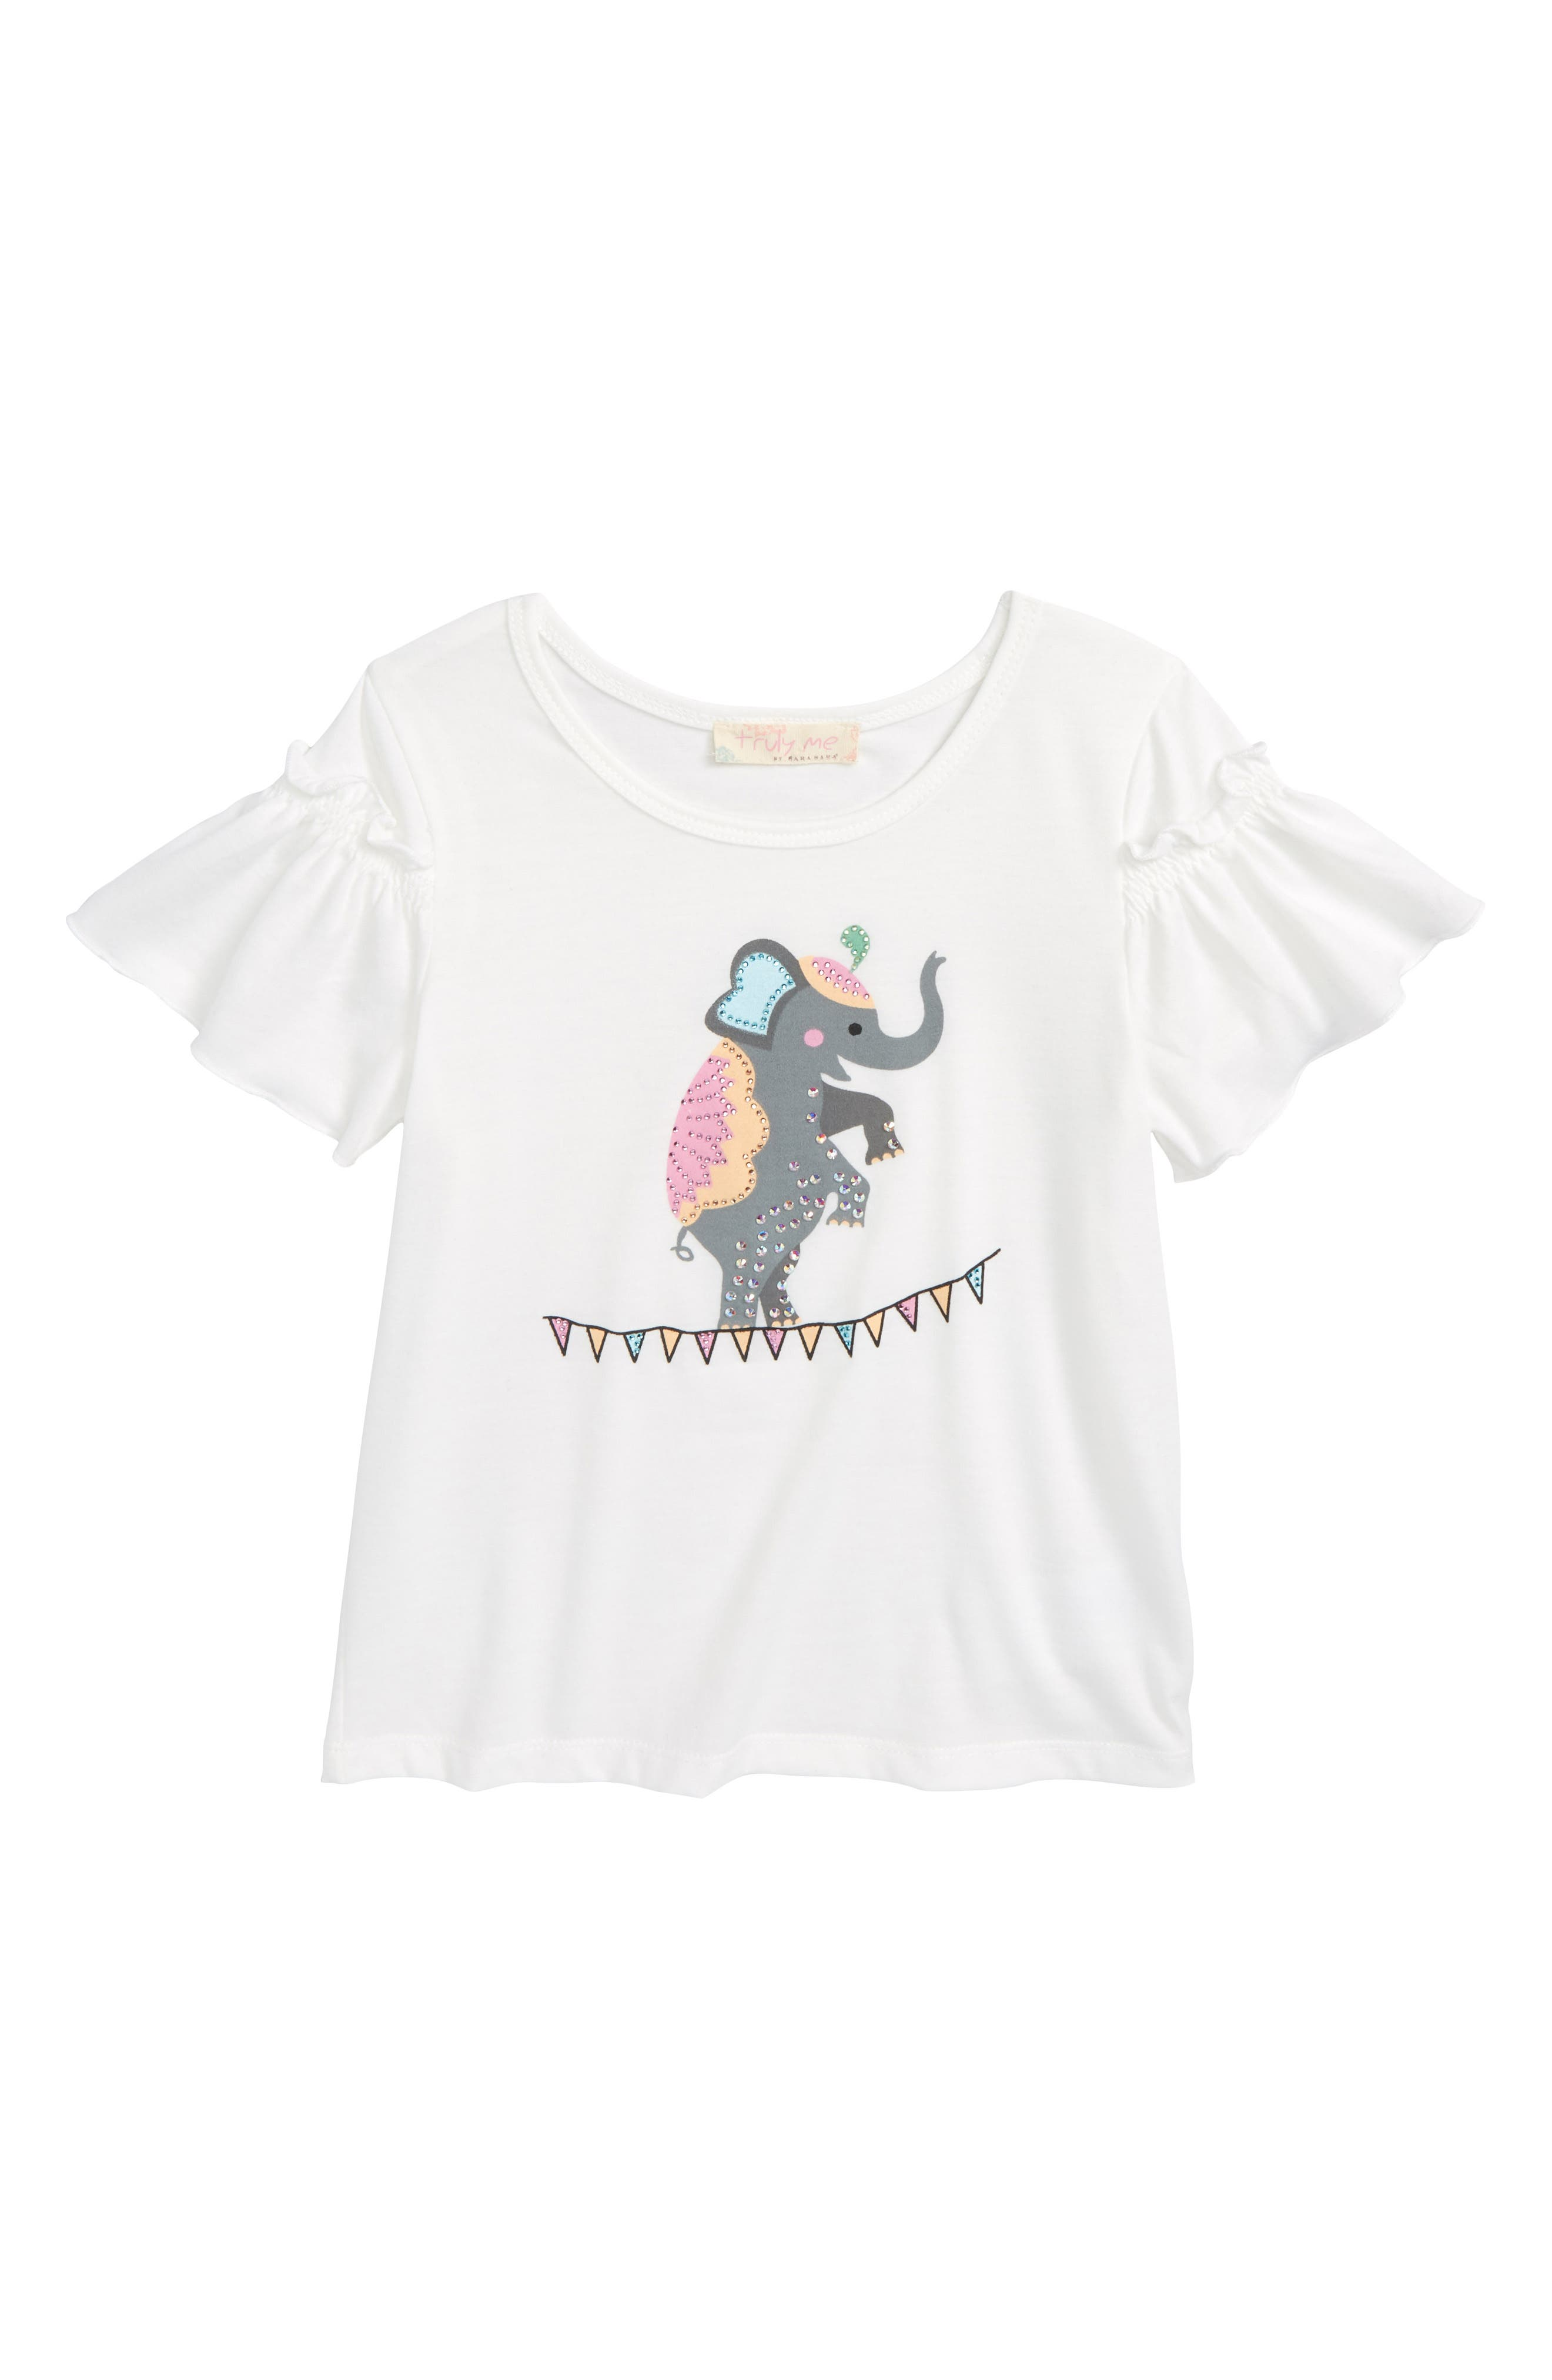 Embellished Elephant Graphic Tee,                         Main,                         color, White